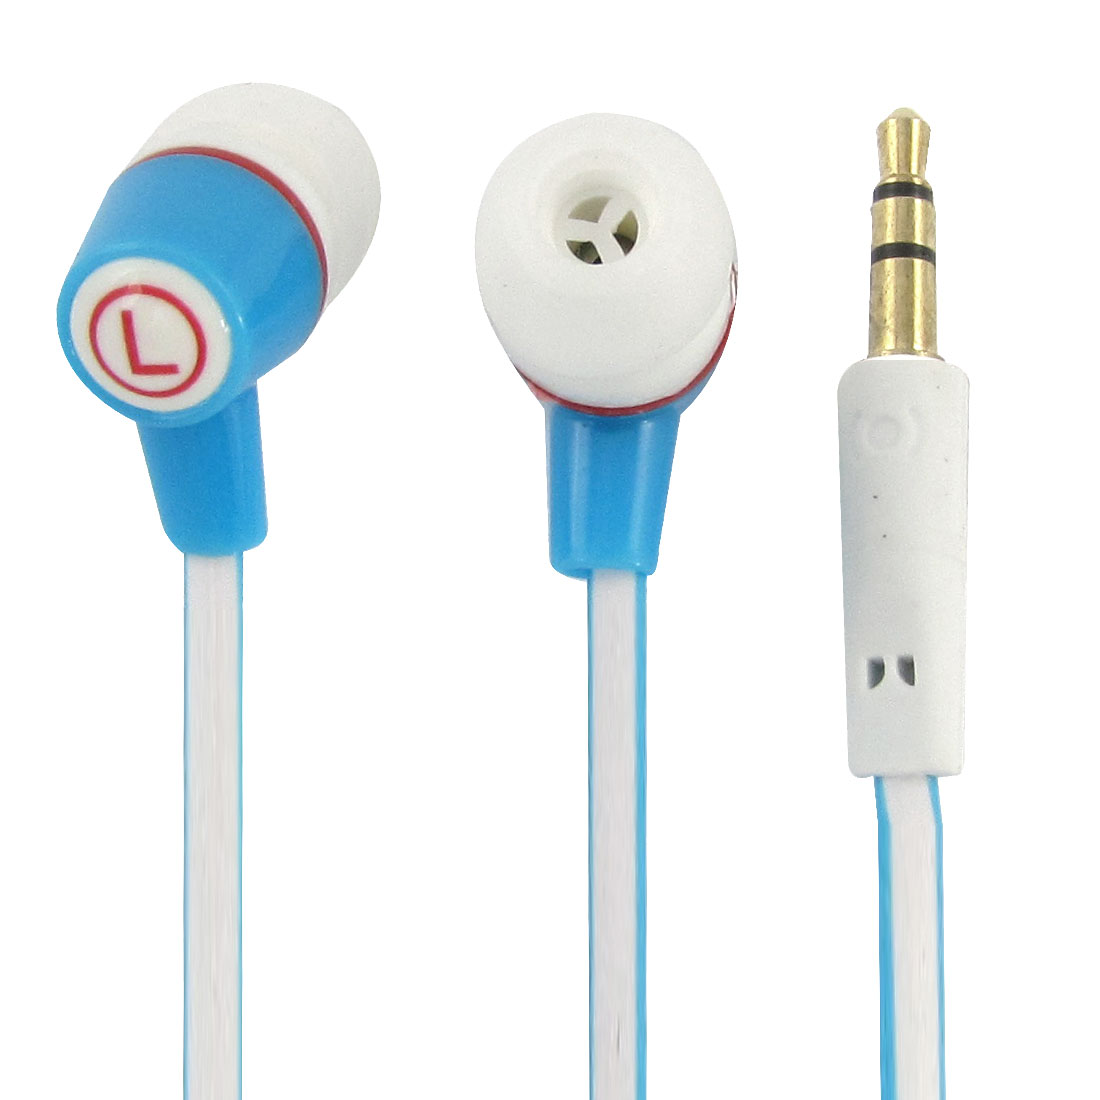 3.5mm Plug Earphone Headphone 3.8ft Cable White Blue for Smartphone